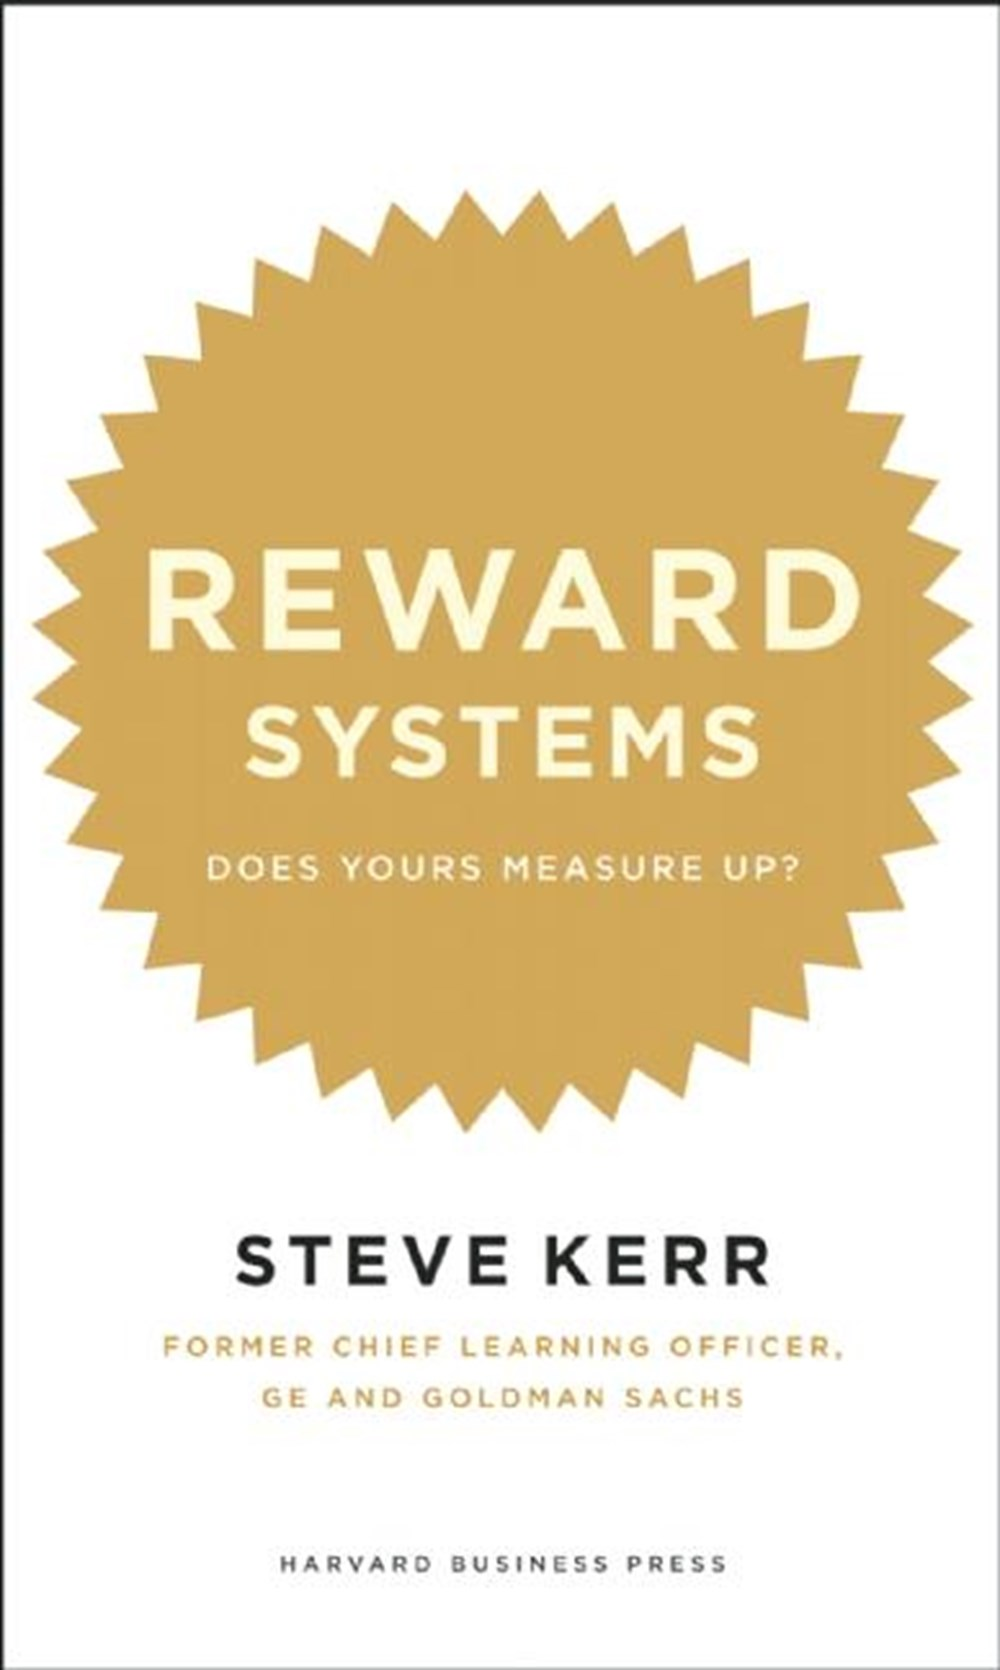 Reward Systems Does Yours Measure Up?